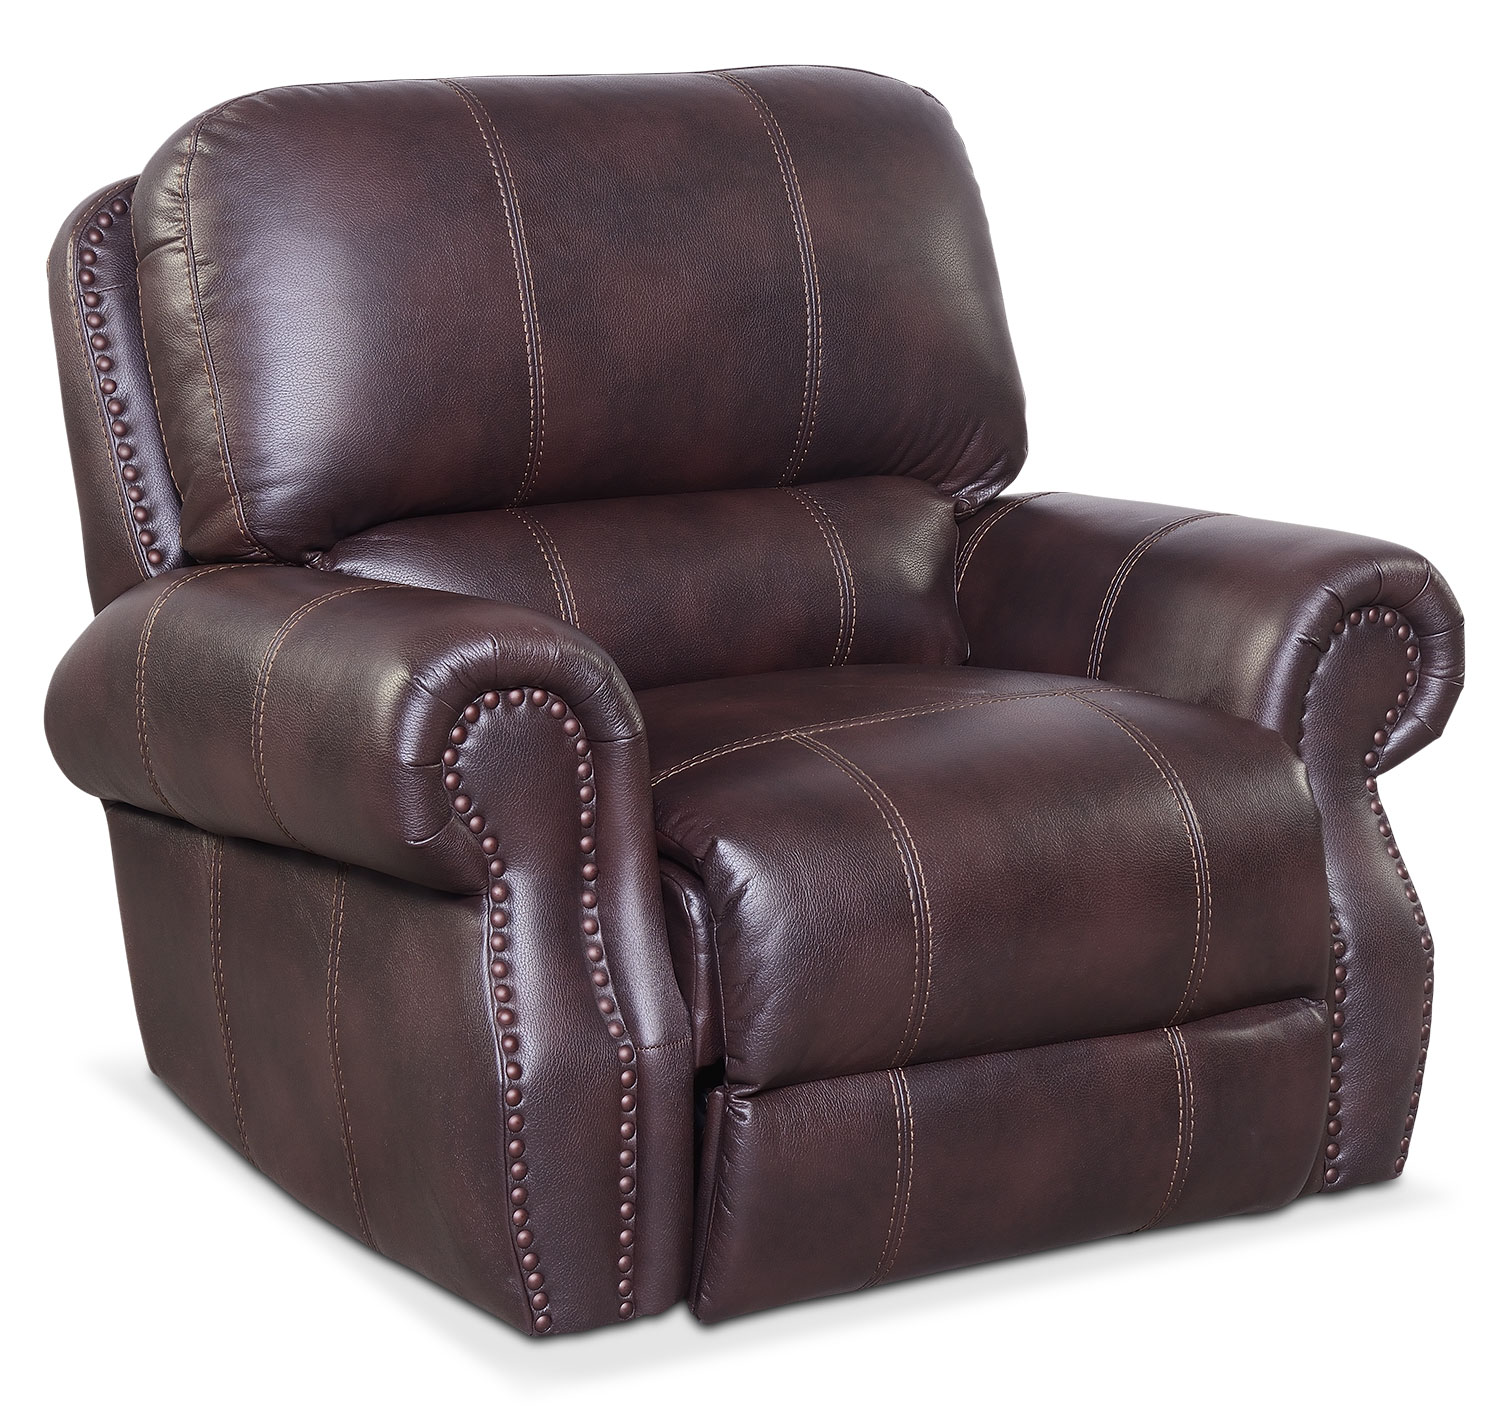 Living Room Furniture - Dartmouth Power Recliner